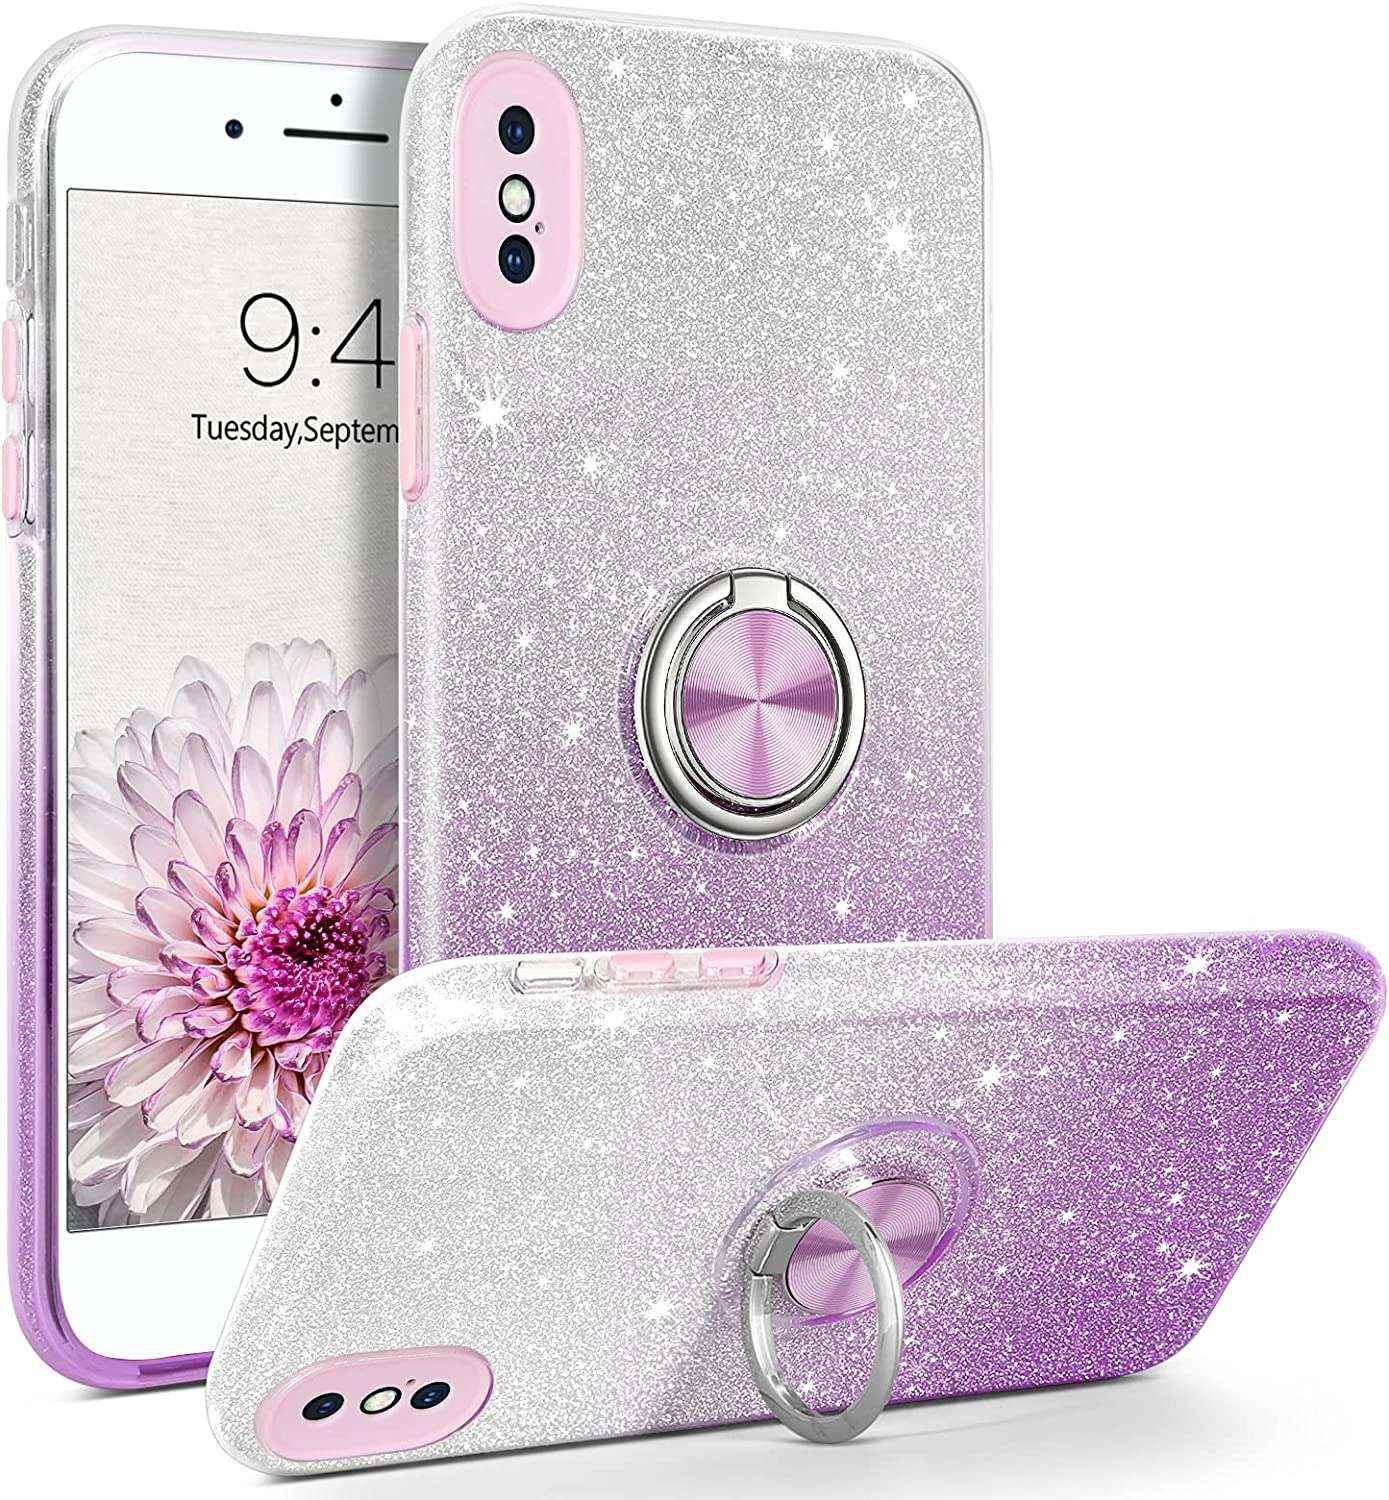 BENTOBEN iPhone X Case, iPhone Xs Case, Glitter Sparkly | 360° Ring Holder Kickstand | Magnetic Car Mount Dual Layer Shockproof Protective Girls Women Case Cover for iPhone X/Xs 5.8 Inch, Purple